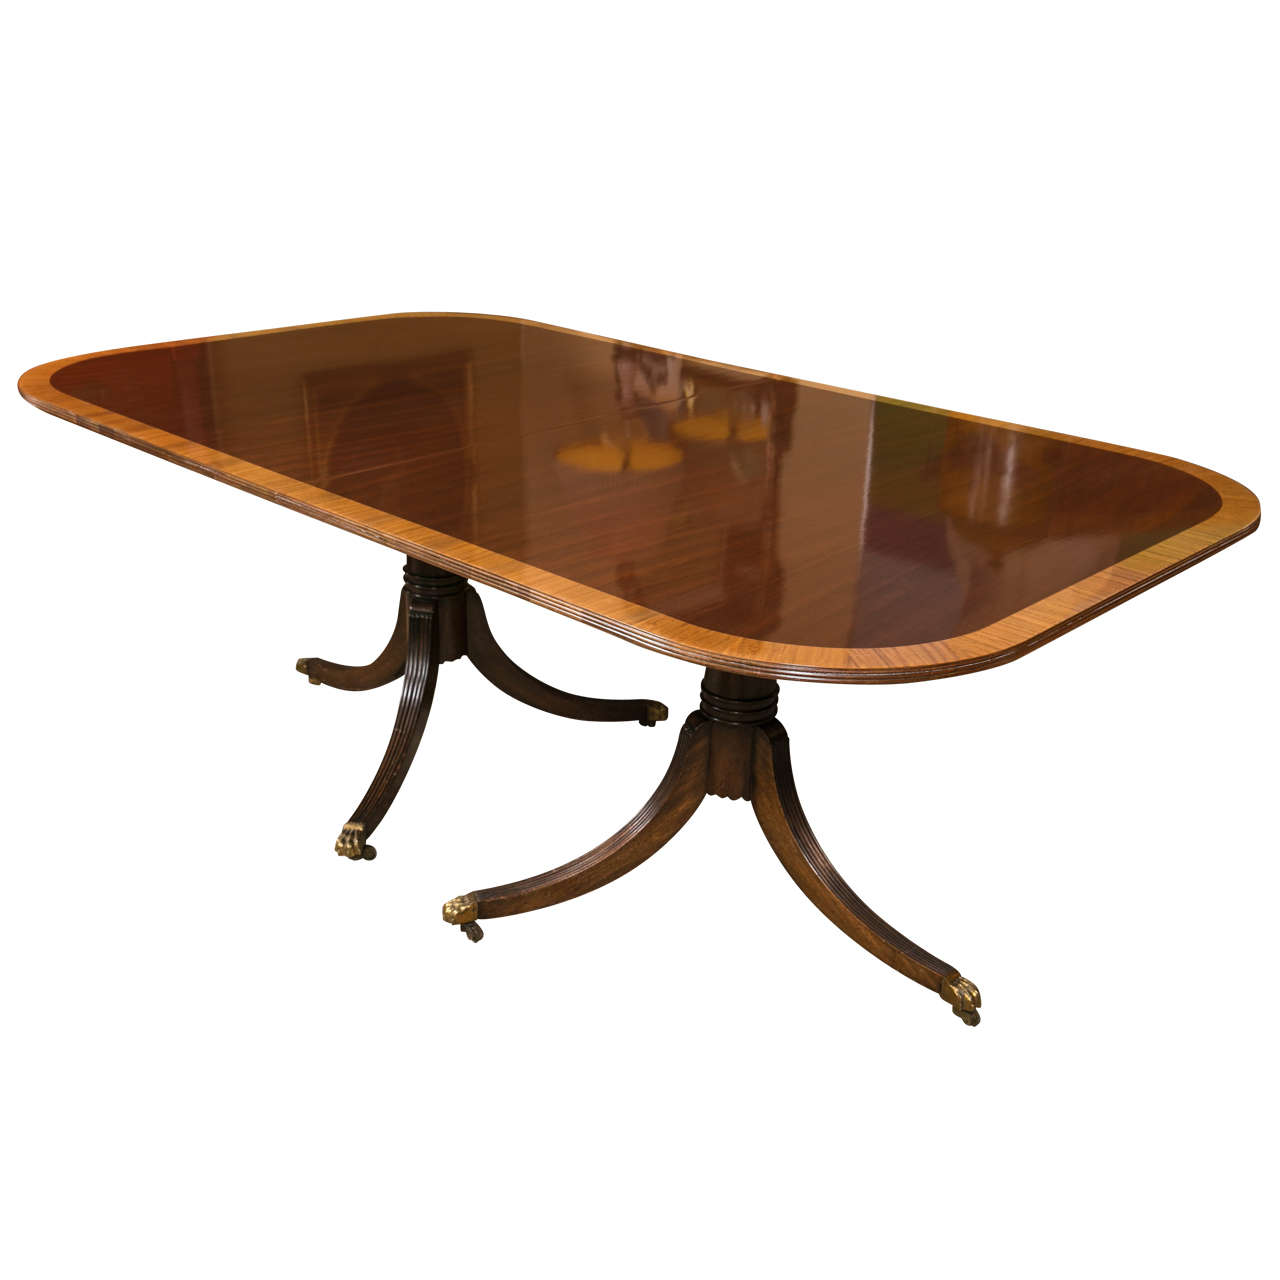 Michael taylor cyprus tree trunk dining table at 1stdibs - Fine Georgian Style Banding Dining Table Possibly Baker 1